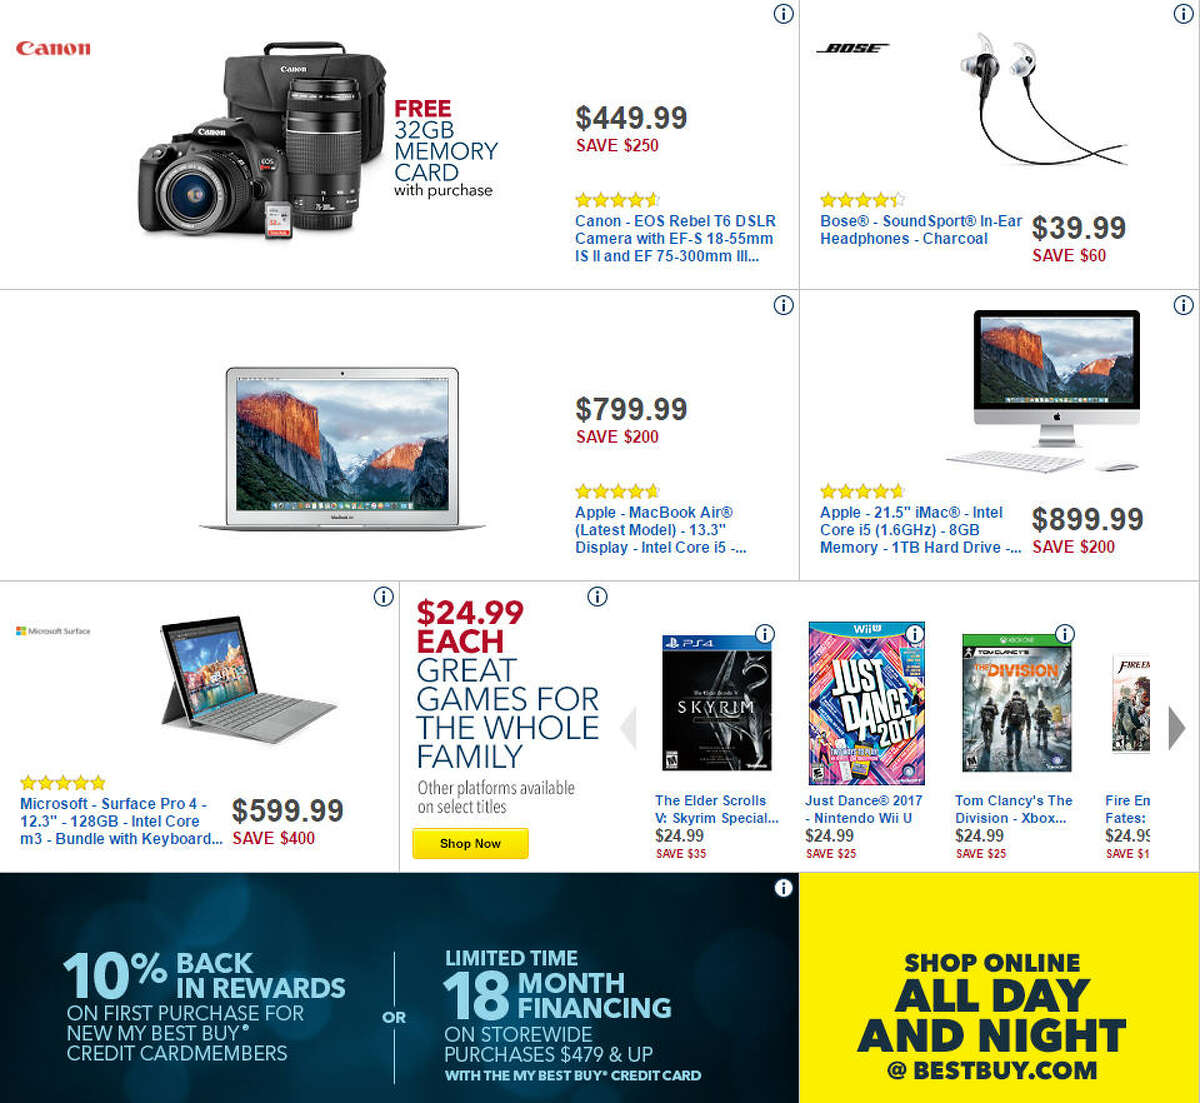 Best Buy has released its 48-page Black Friday 2016 ad circular. All prices and promotions are subject to change and availability, based on the retailer's determination.